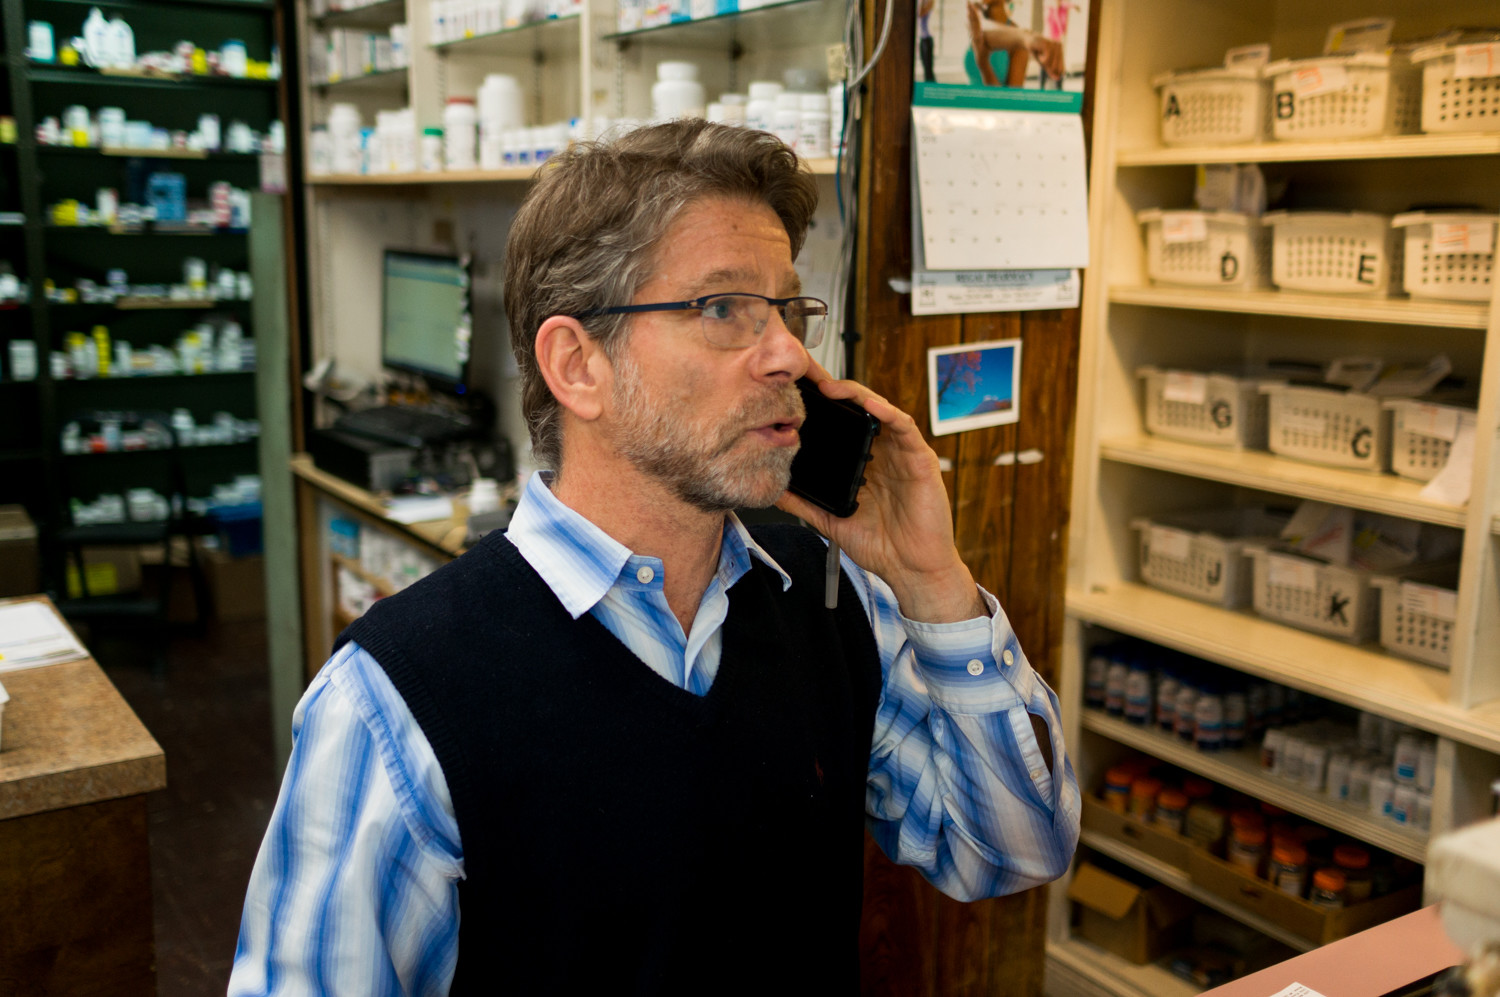 Robert Newman, a pharmacist at Regal Pharmacy, has had to use his personal cell phone to make calls for work. His landlines and internet service cut out, making it nearly impossible to do business. Verizon, he says, has been slow to respond.